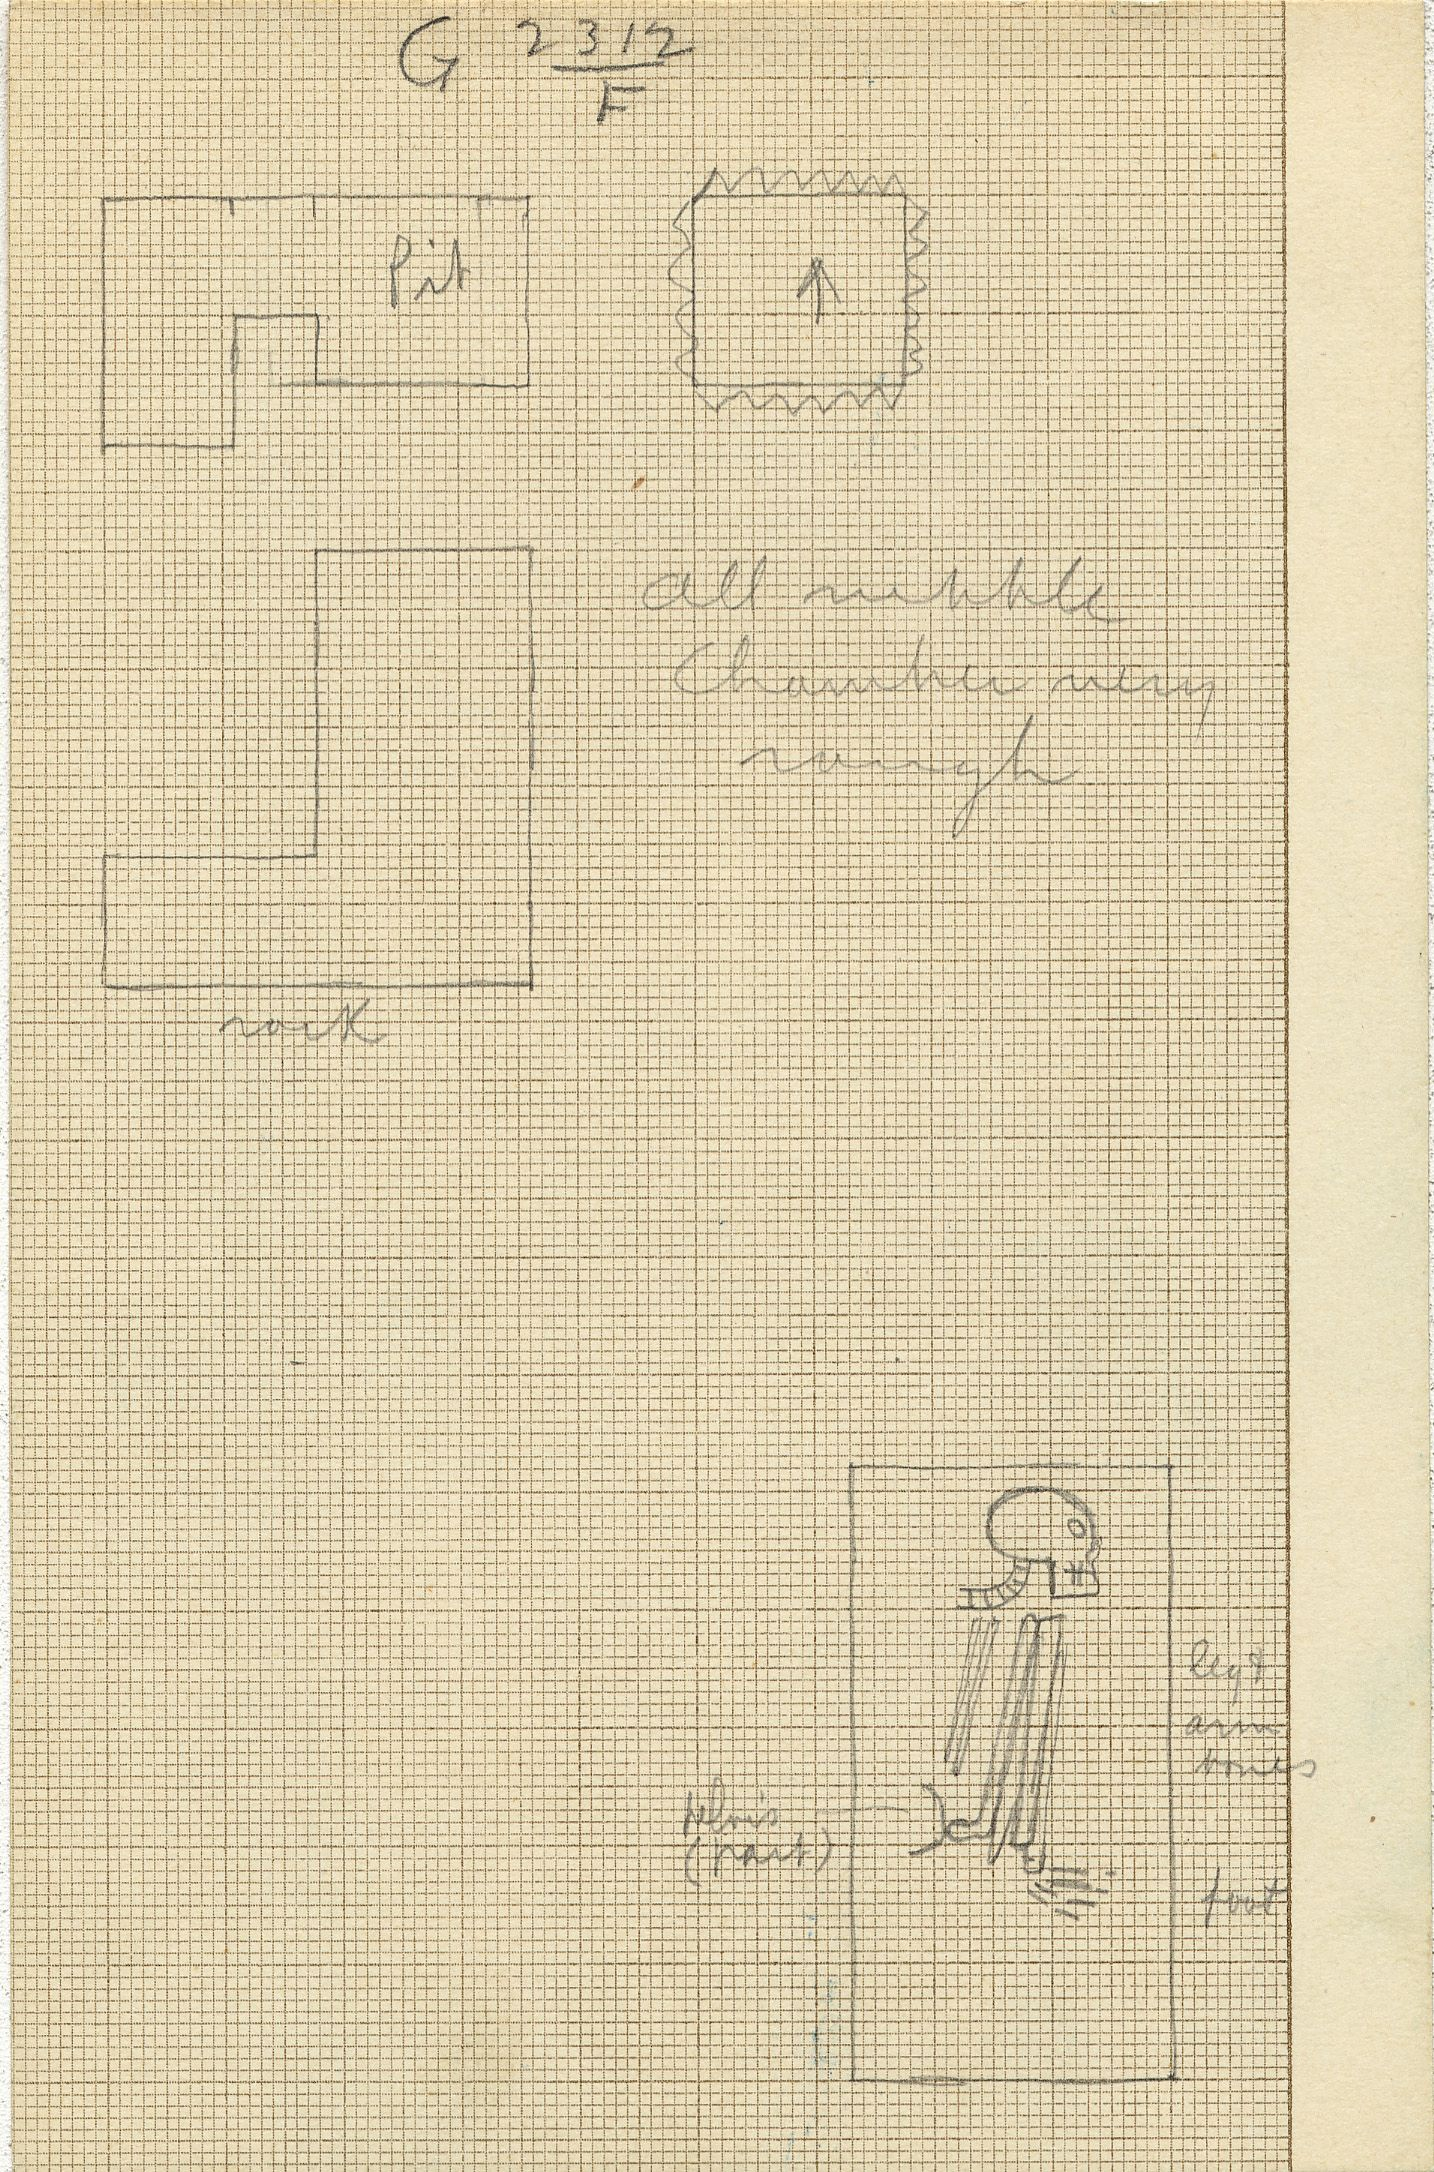 Maps and plans: G 2312, Shaft F